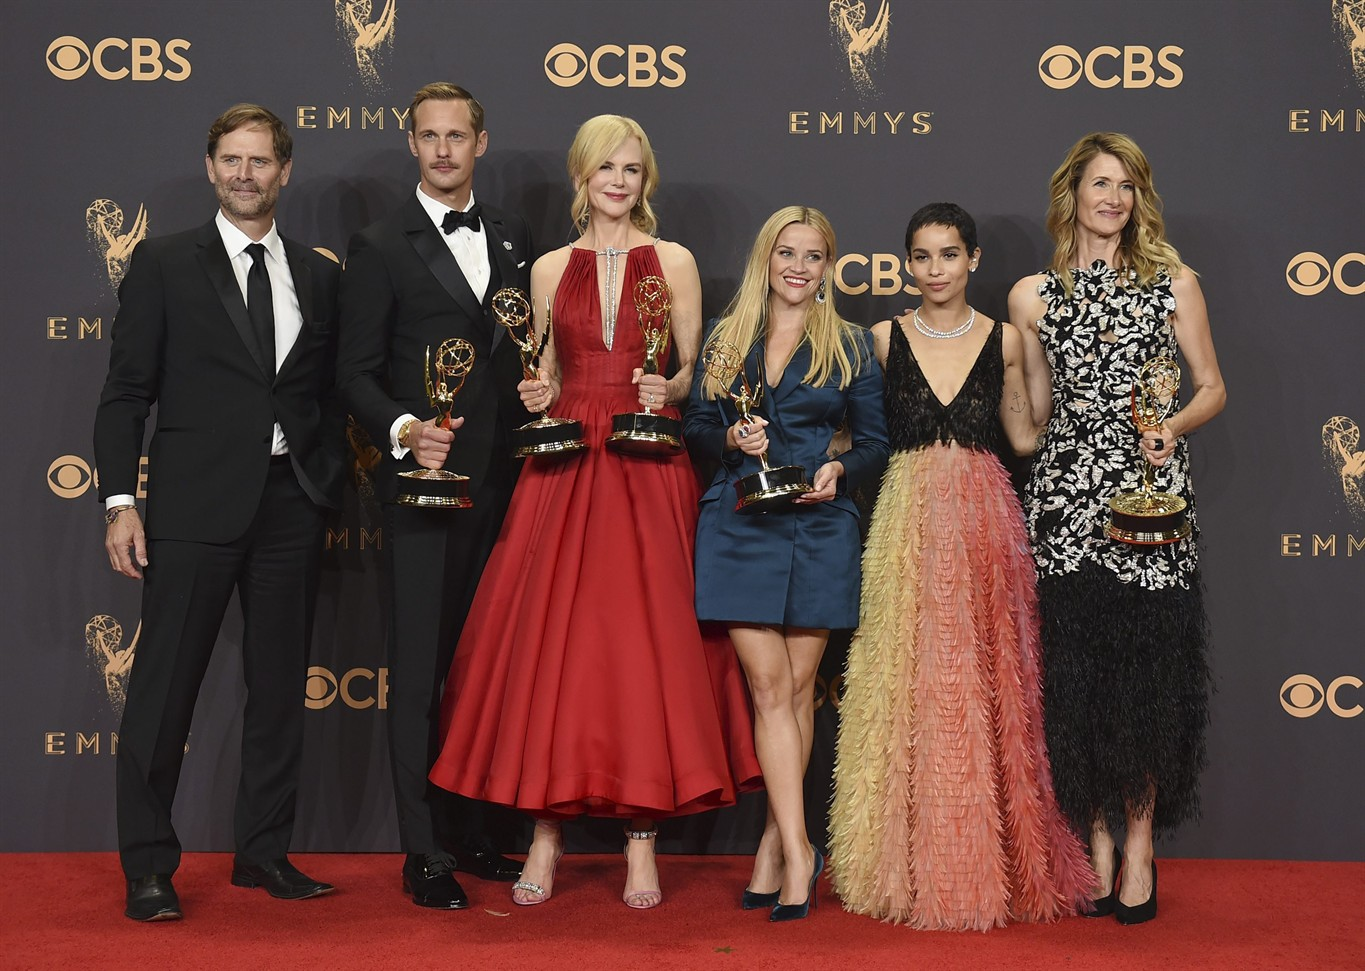 Neilson: Emmys Fail To Get Ratings Boost